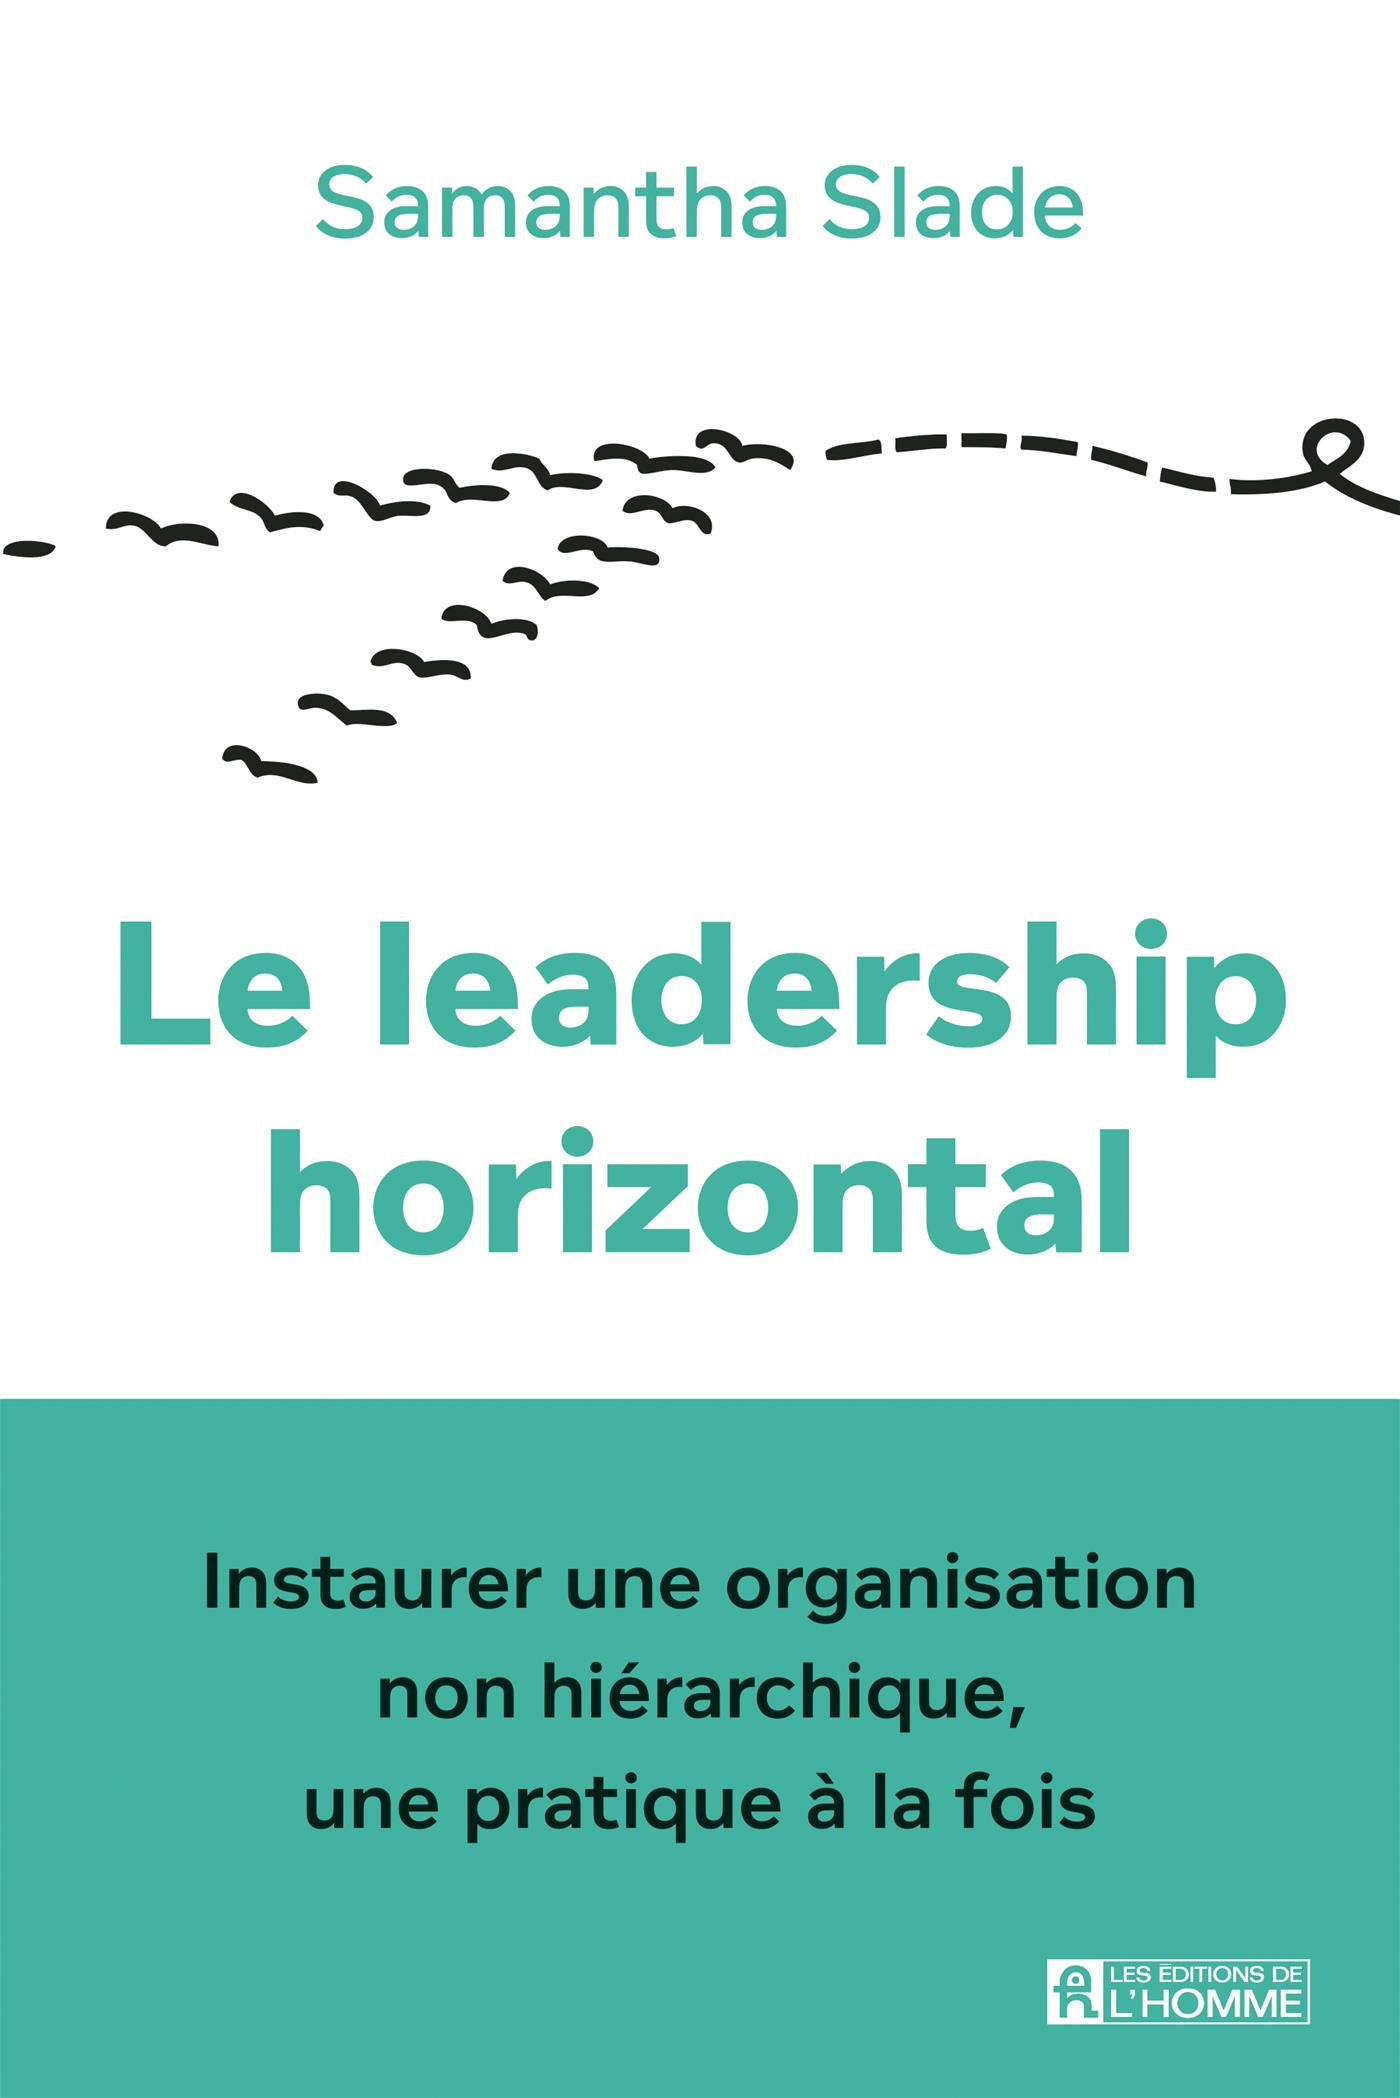 Le leadership horizontal